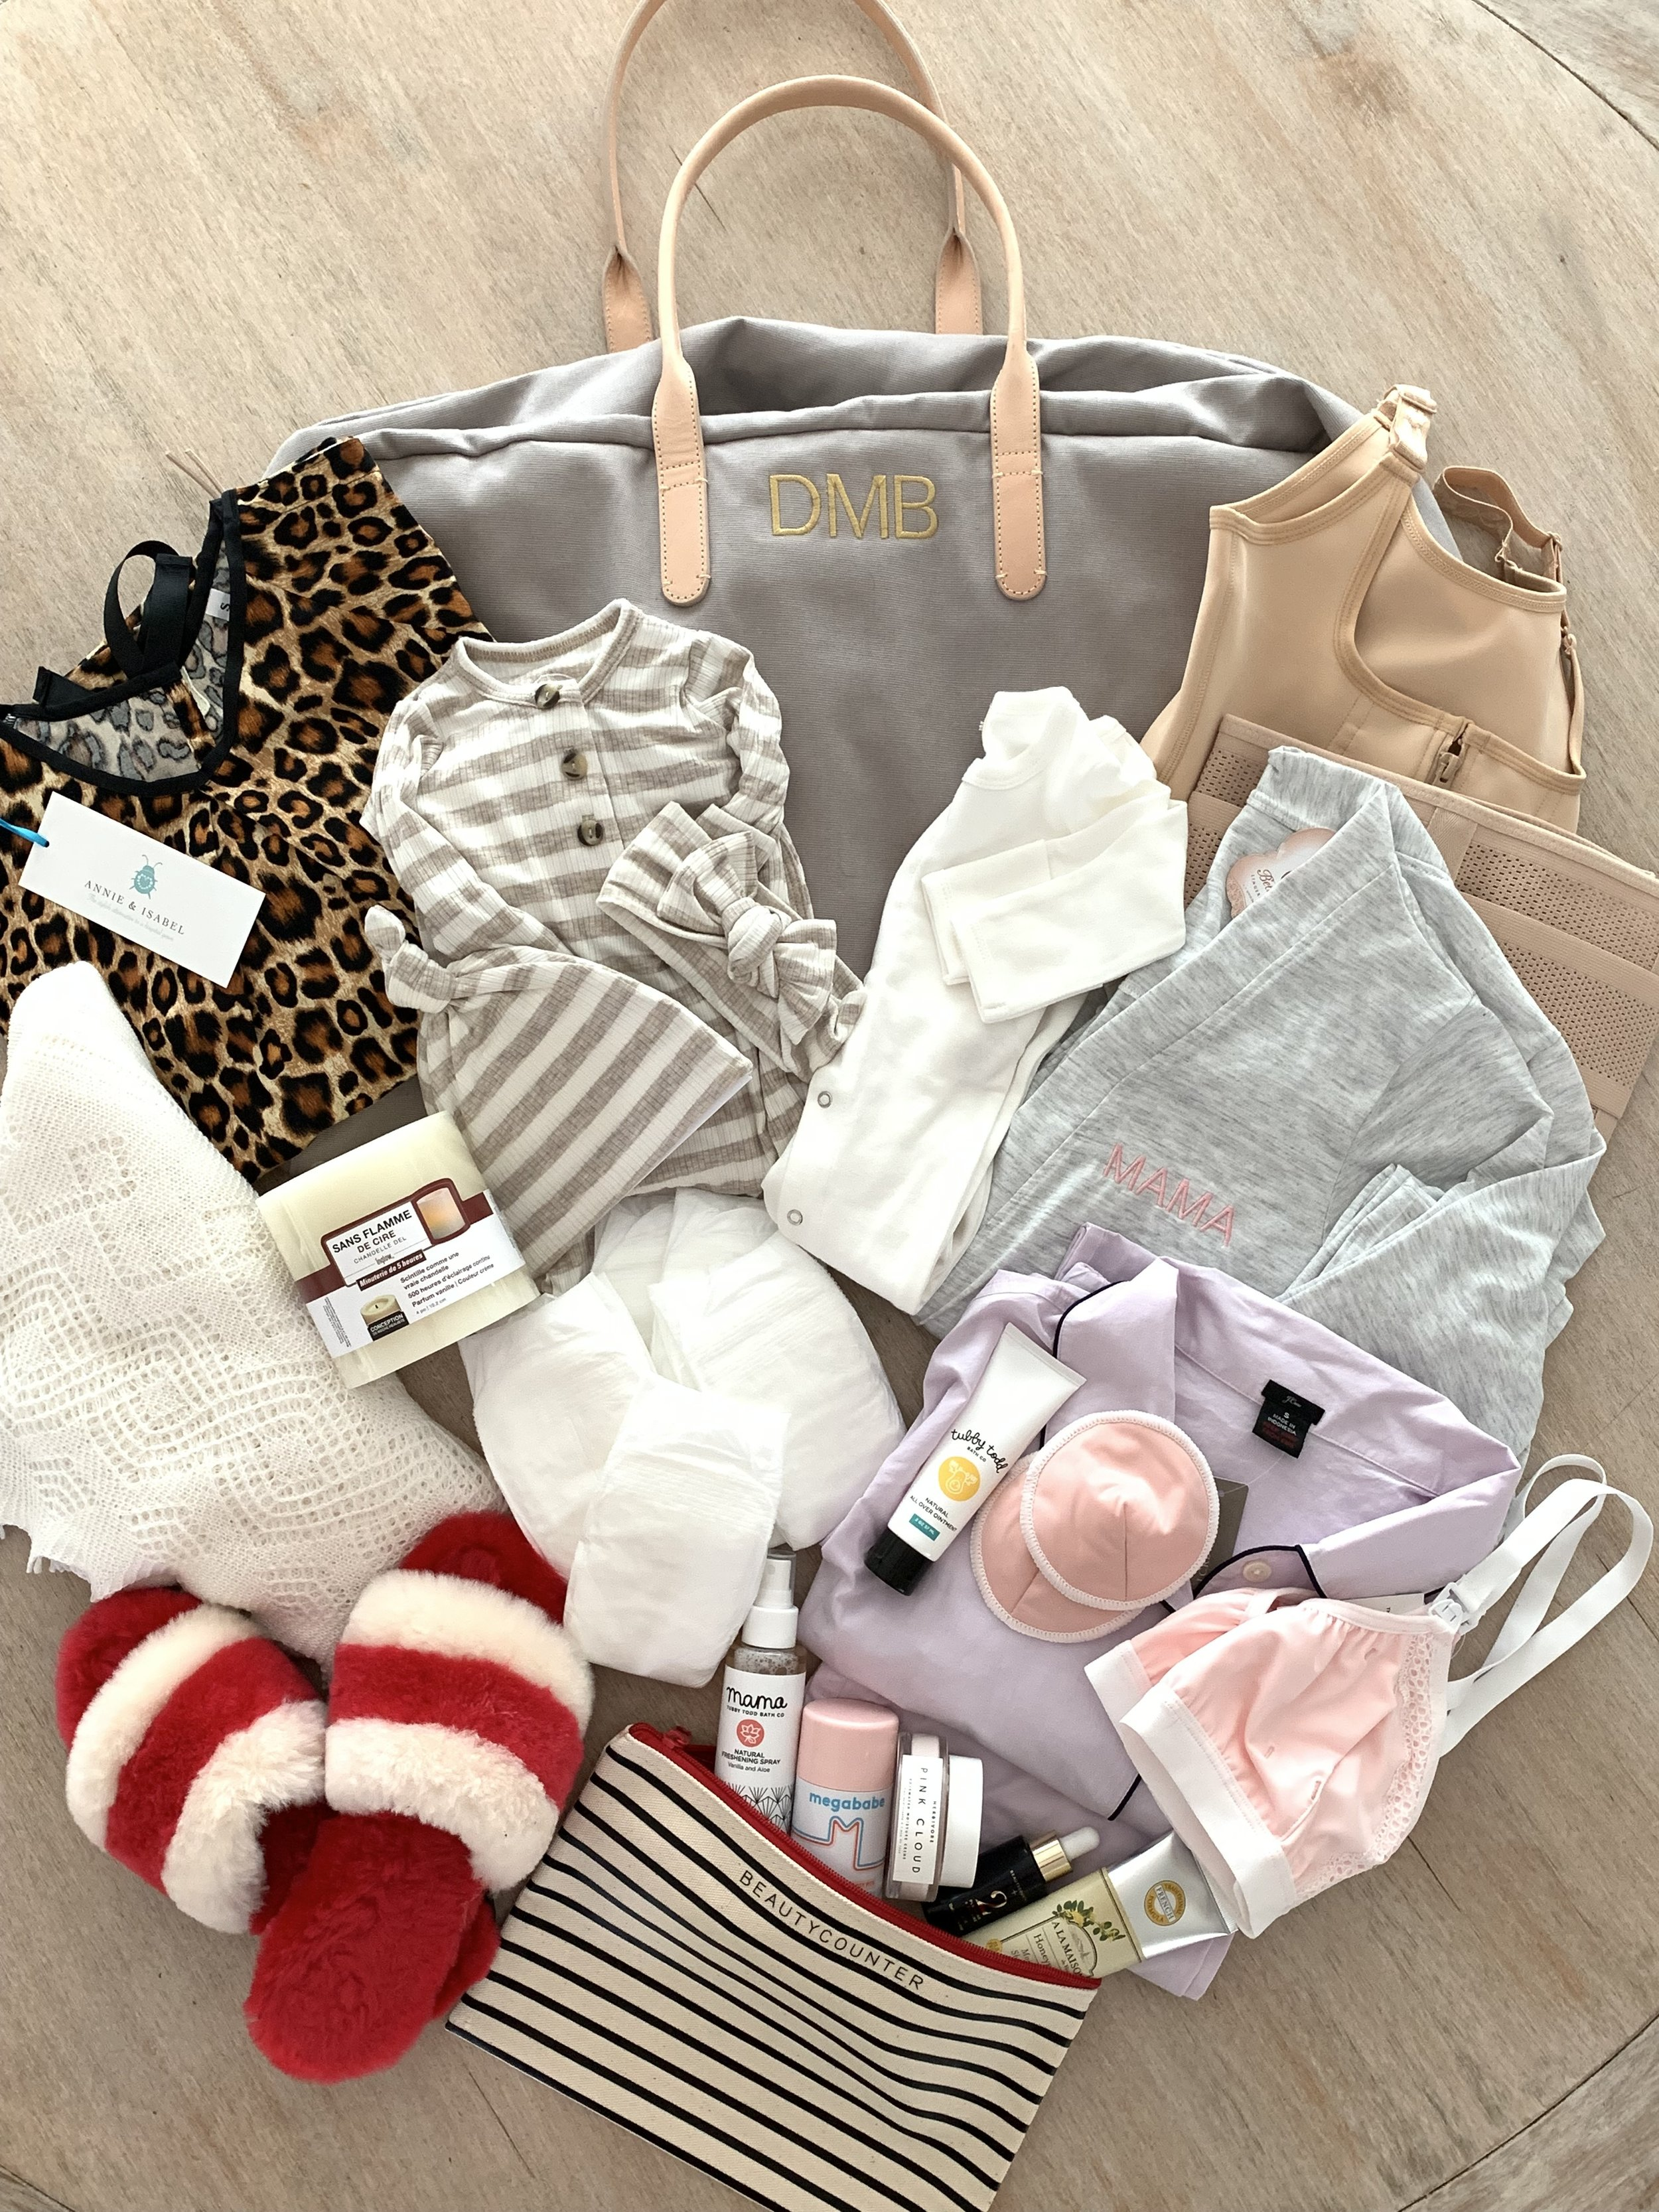 A prepped hospital bag for the arrival of the new family member. Includes a layout of clothes and products.